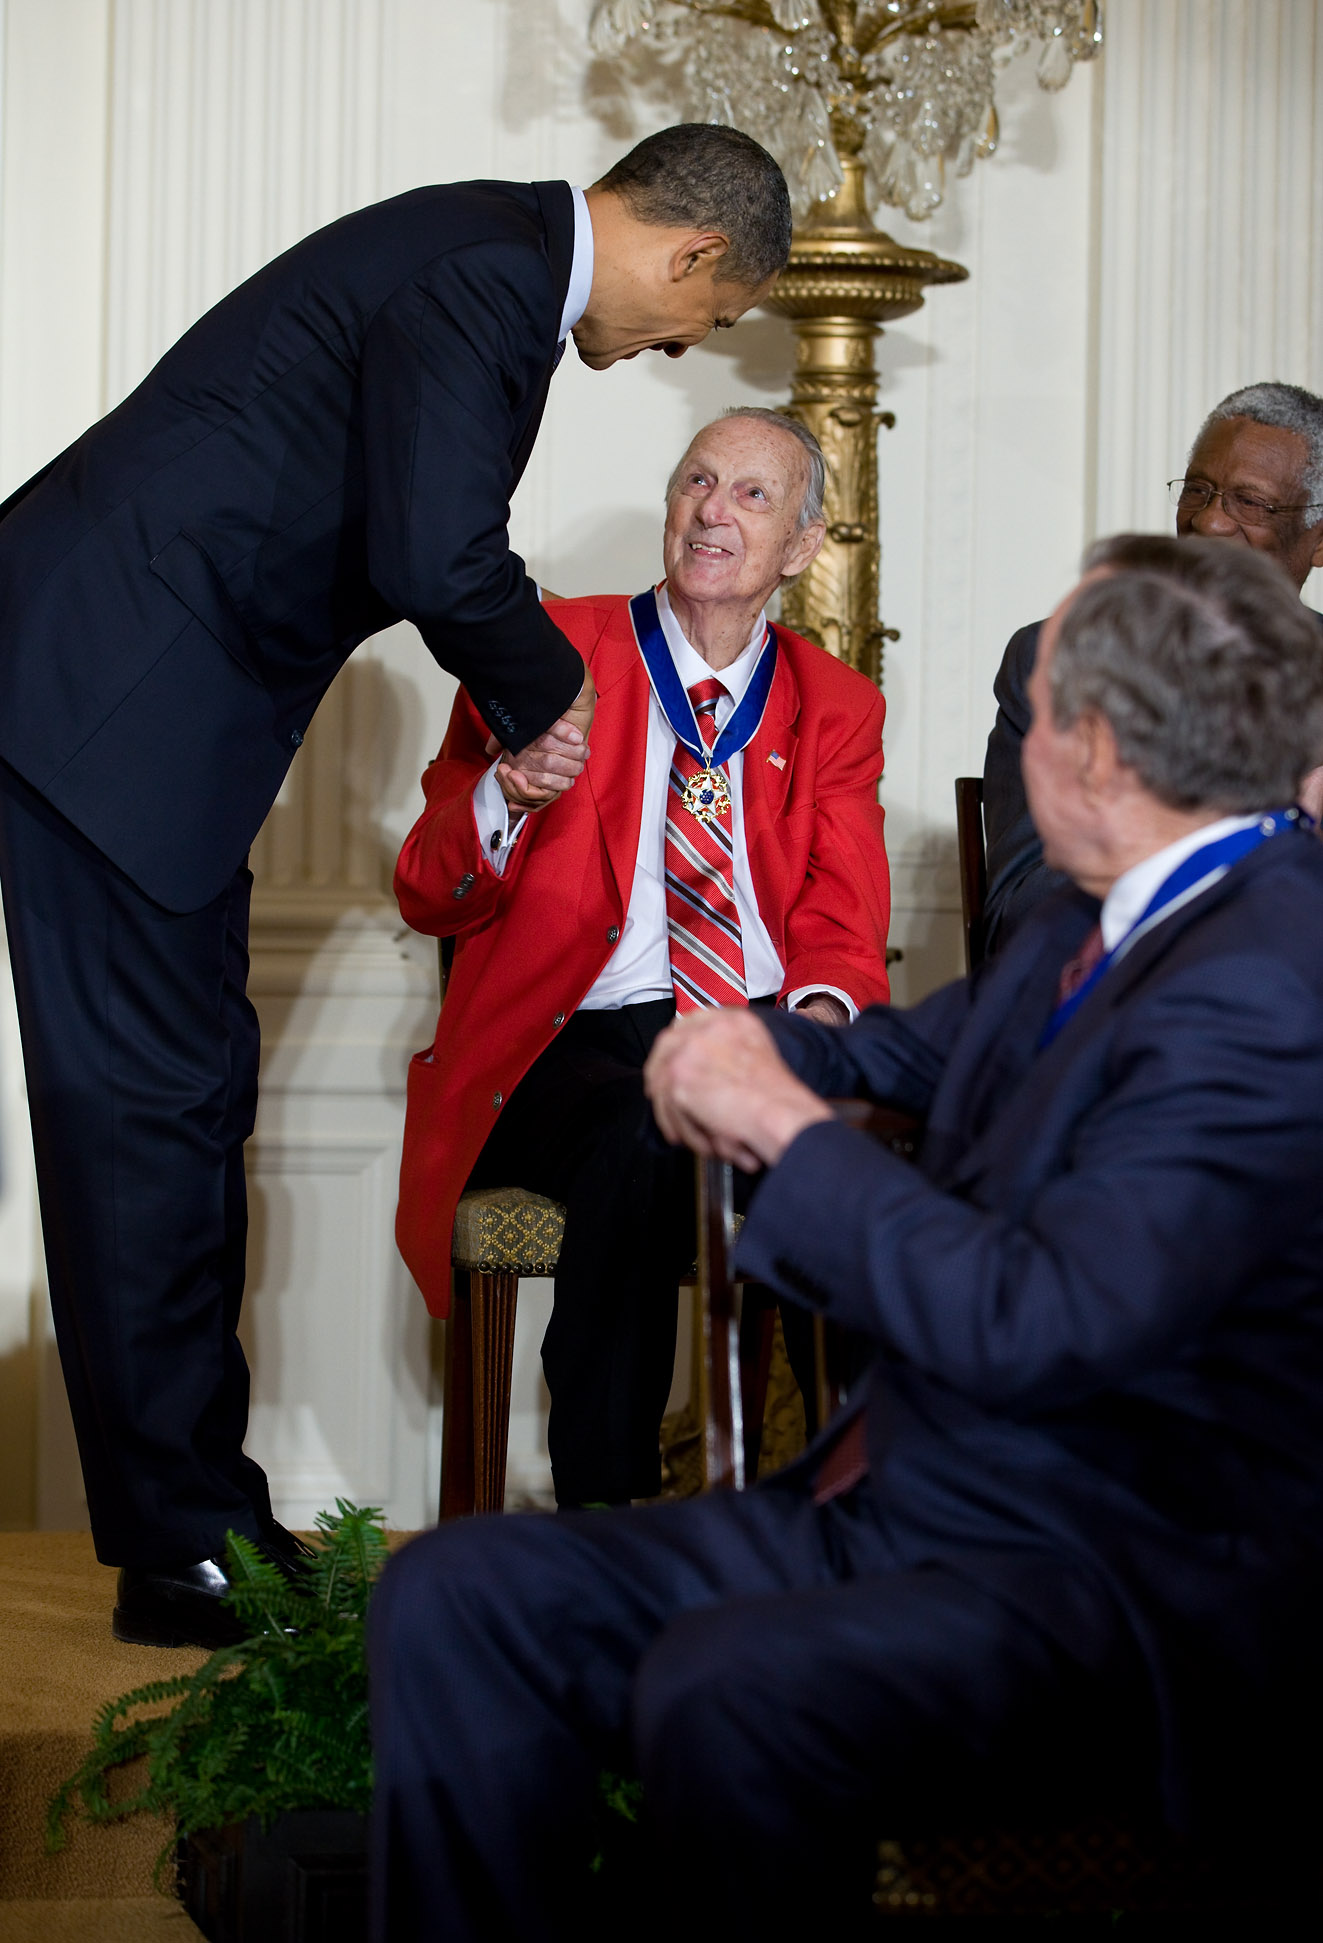 President Barack Obama awards the 2010 Presidential Medal of Freedom to Stan Musial